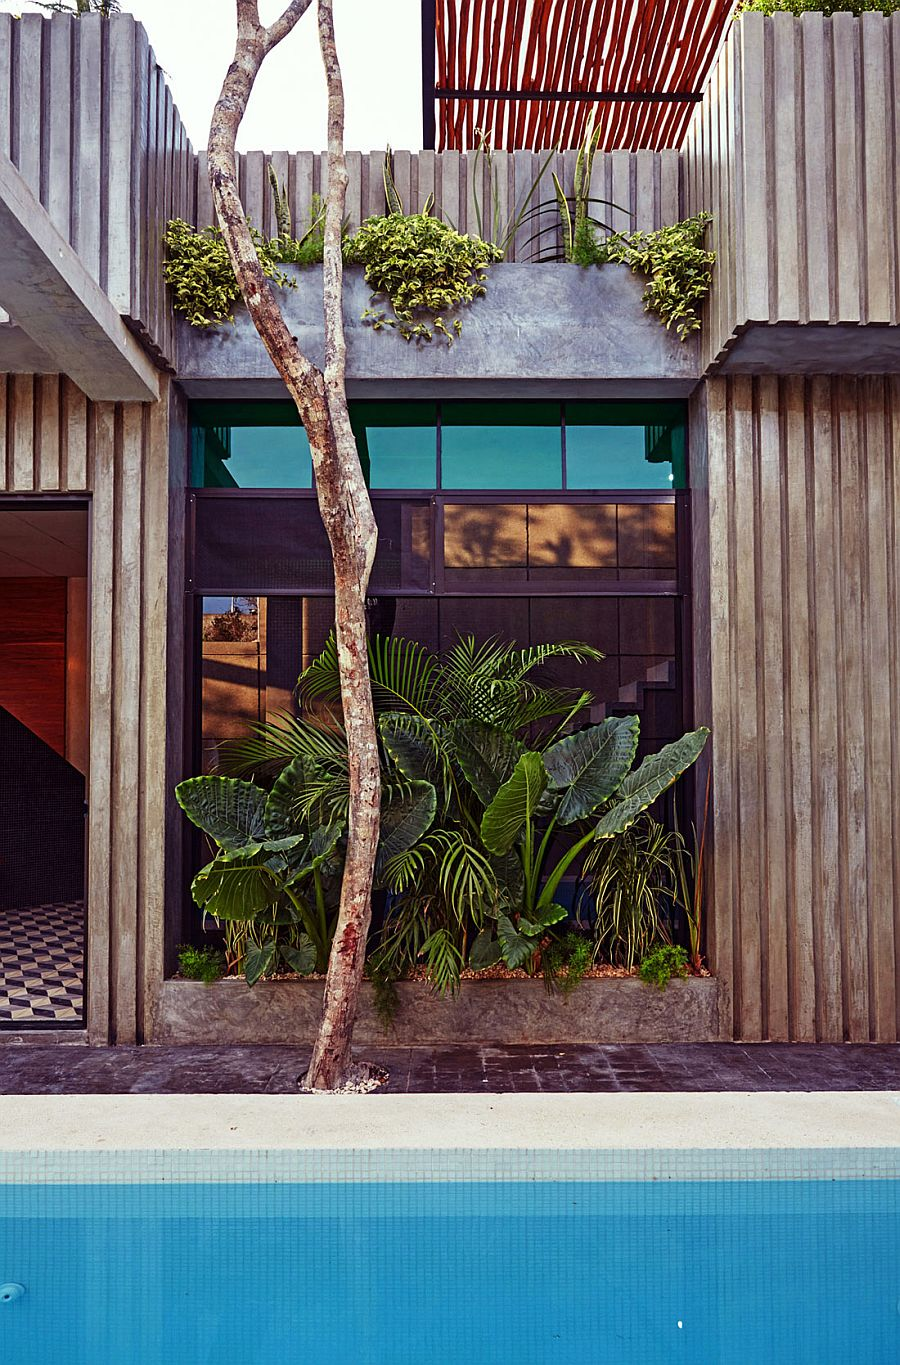 Natural greenery is intertwined with the steely concrete structure of the home